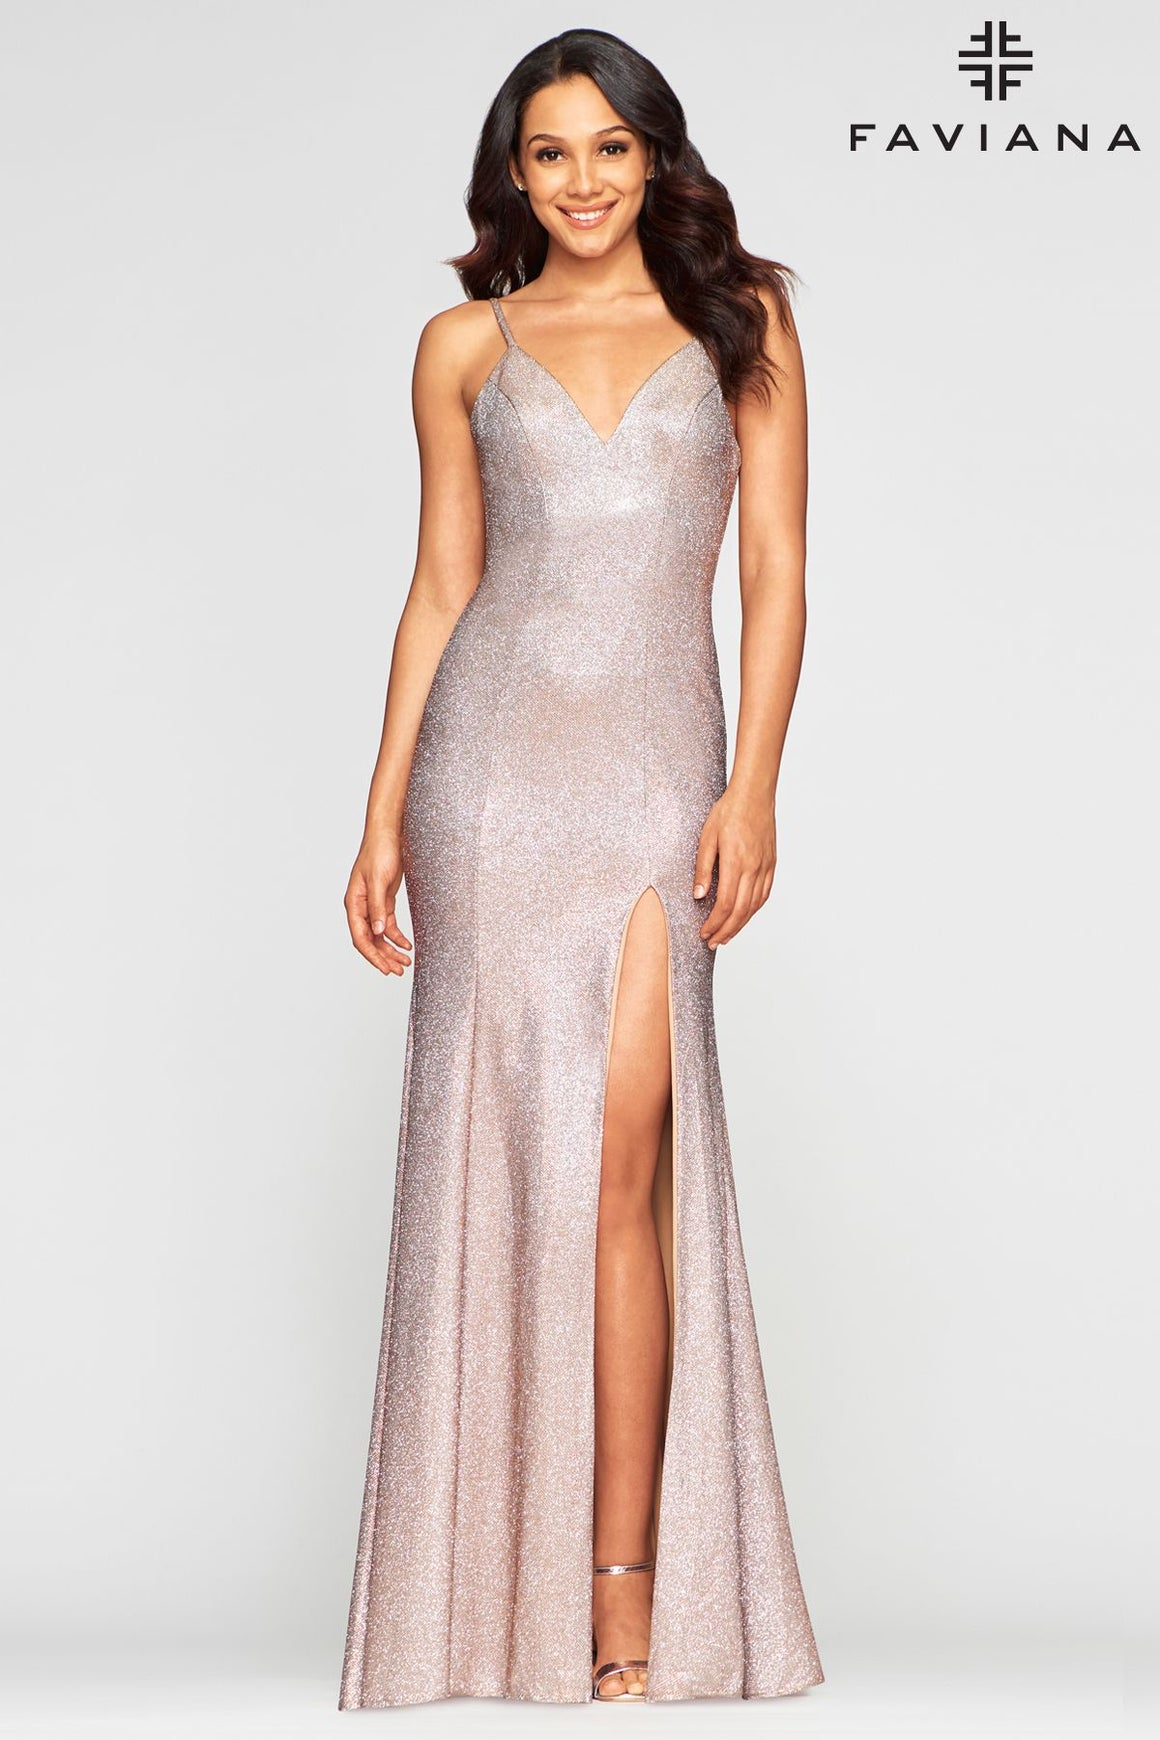 Faviana S10427 Metallic Jersey Gown With Criss-Cross Back Detail and Side Slit